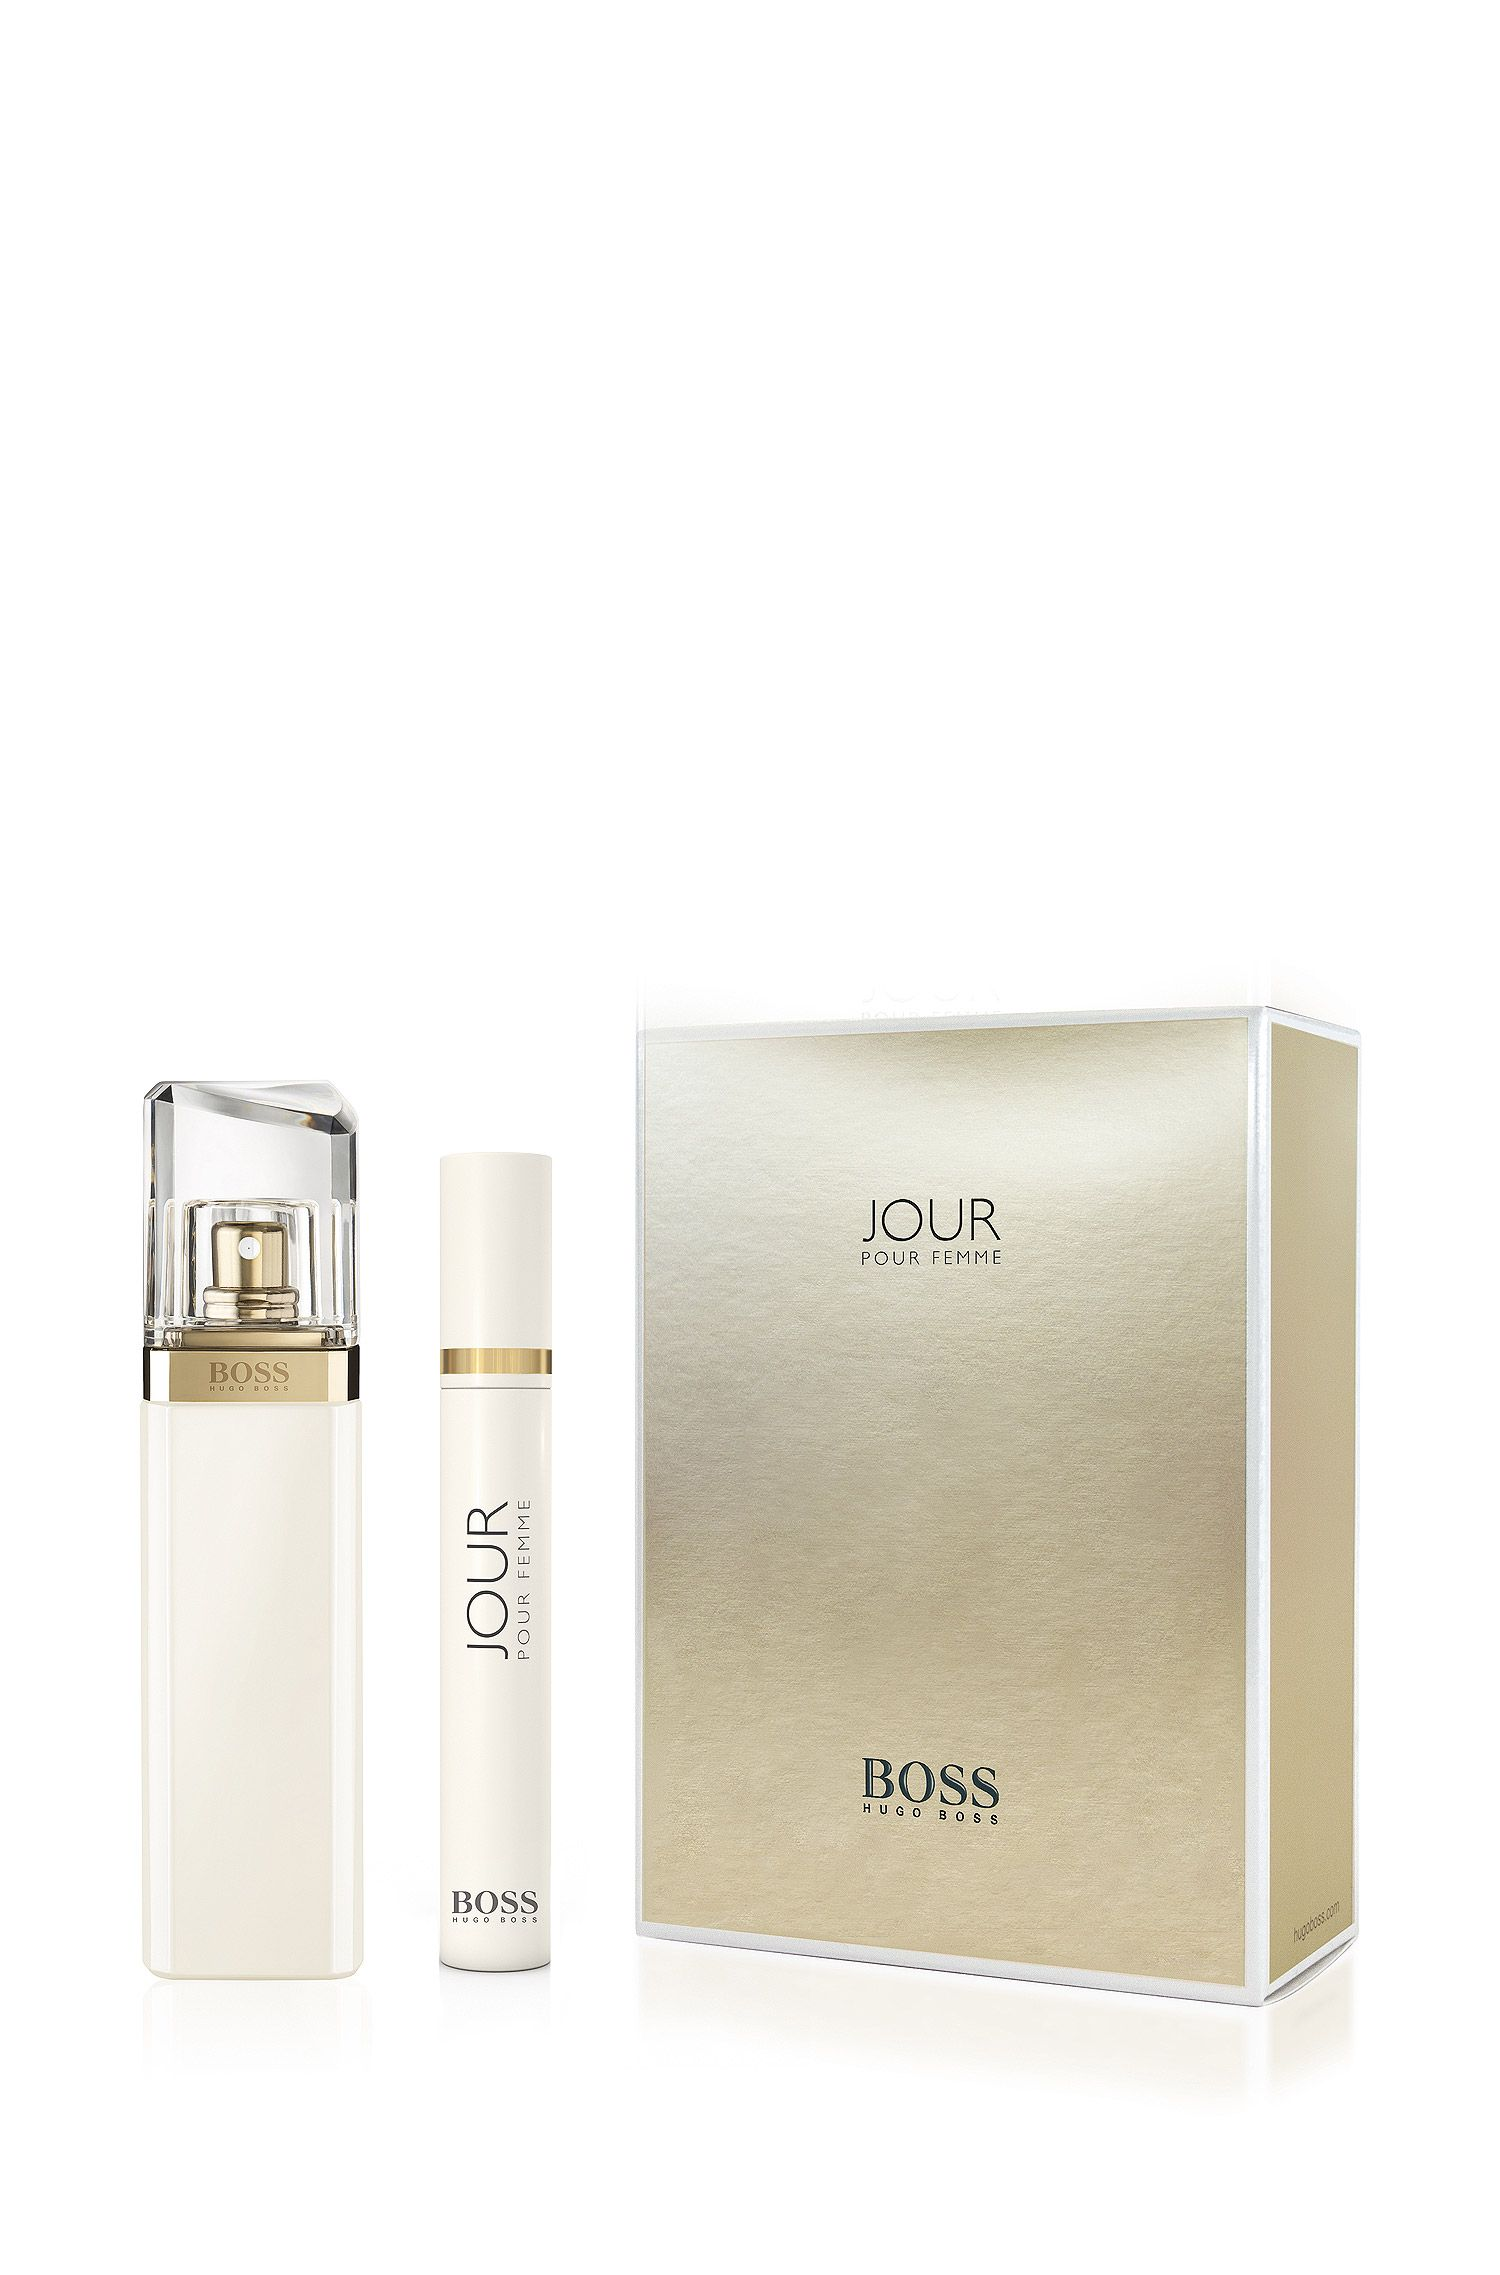 Duftset BOSS Jour mit Eau de Toilette und Travel Spray